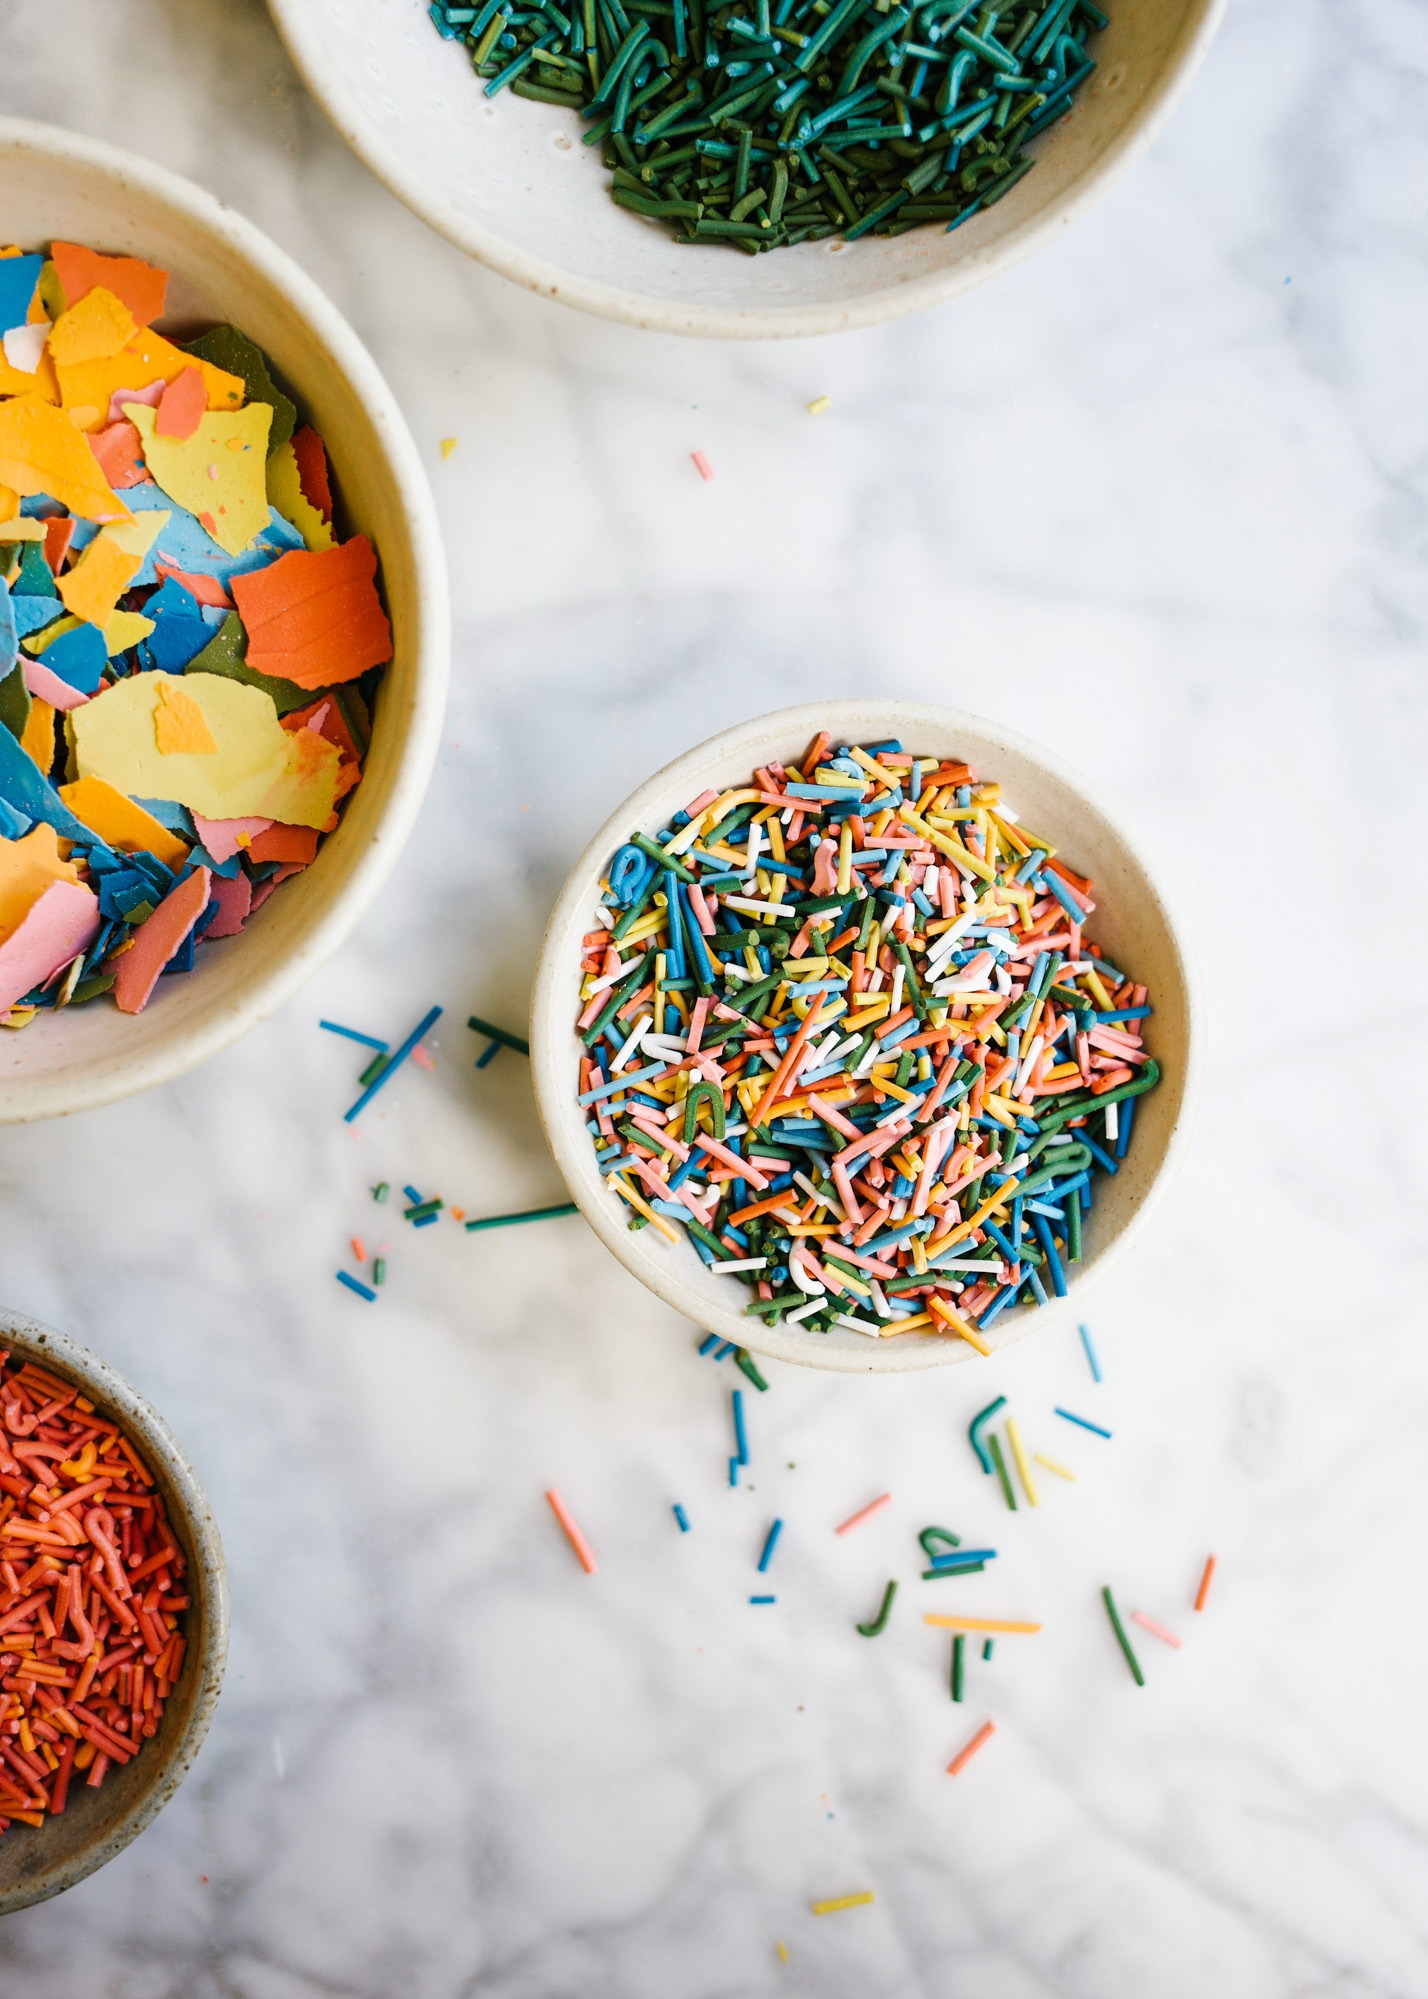 Homemade Sprinkles by Wood and Spoon blog. Here's the how to on making sprinkles from scratch! Follow one of three ways to make hand-dyed jimmies, nonpareils, and flaked sugar confetti. Use these edible decorations to glitter cakes, cookies, cupcakes and more! Find the recipes and learn DIY from scratch here on thewoodandspoon.com